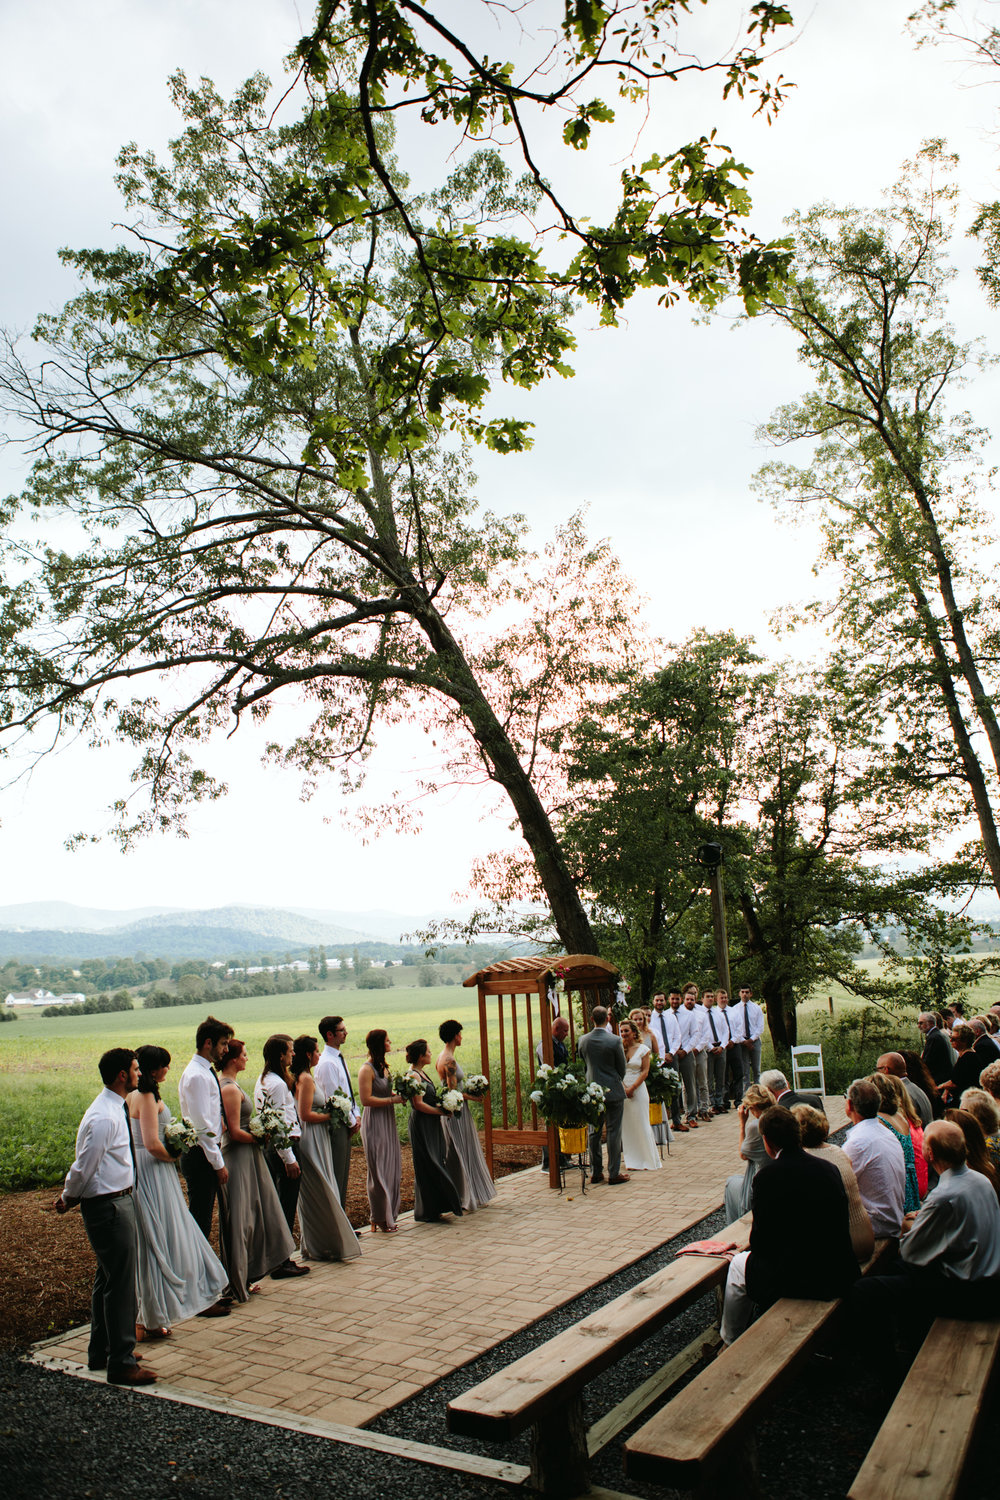 shenandoah-woods-wedding-venue-june-1.jpg